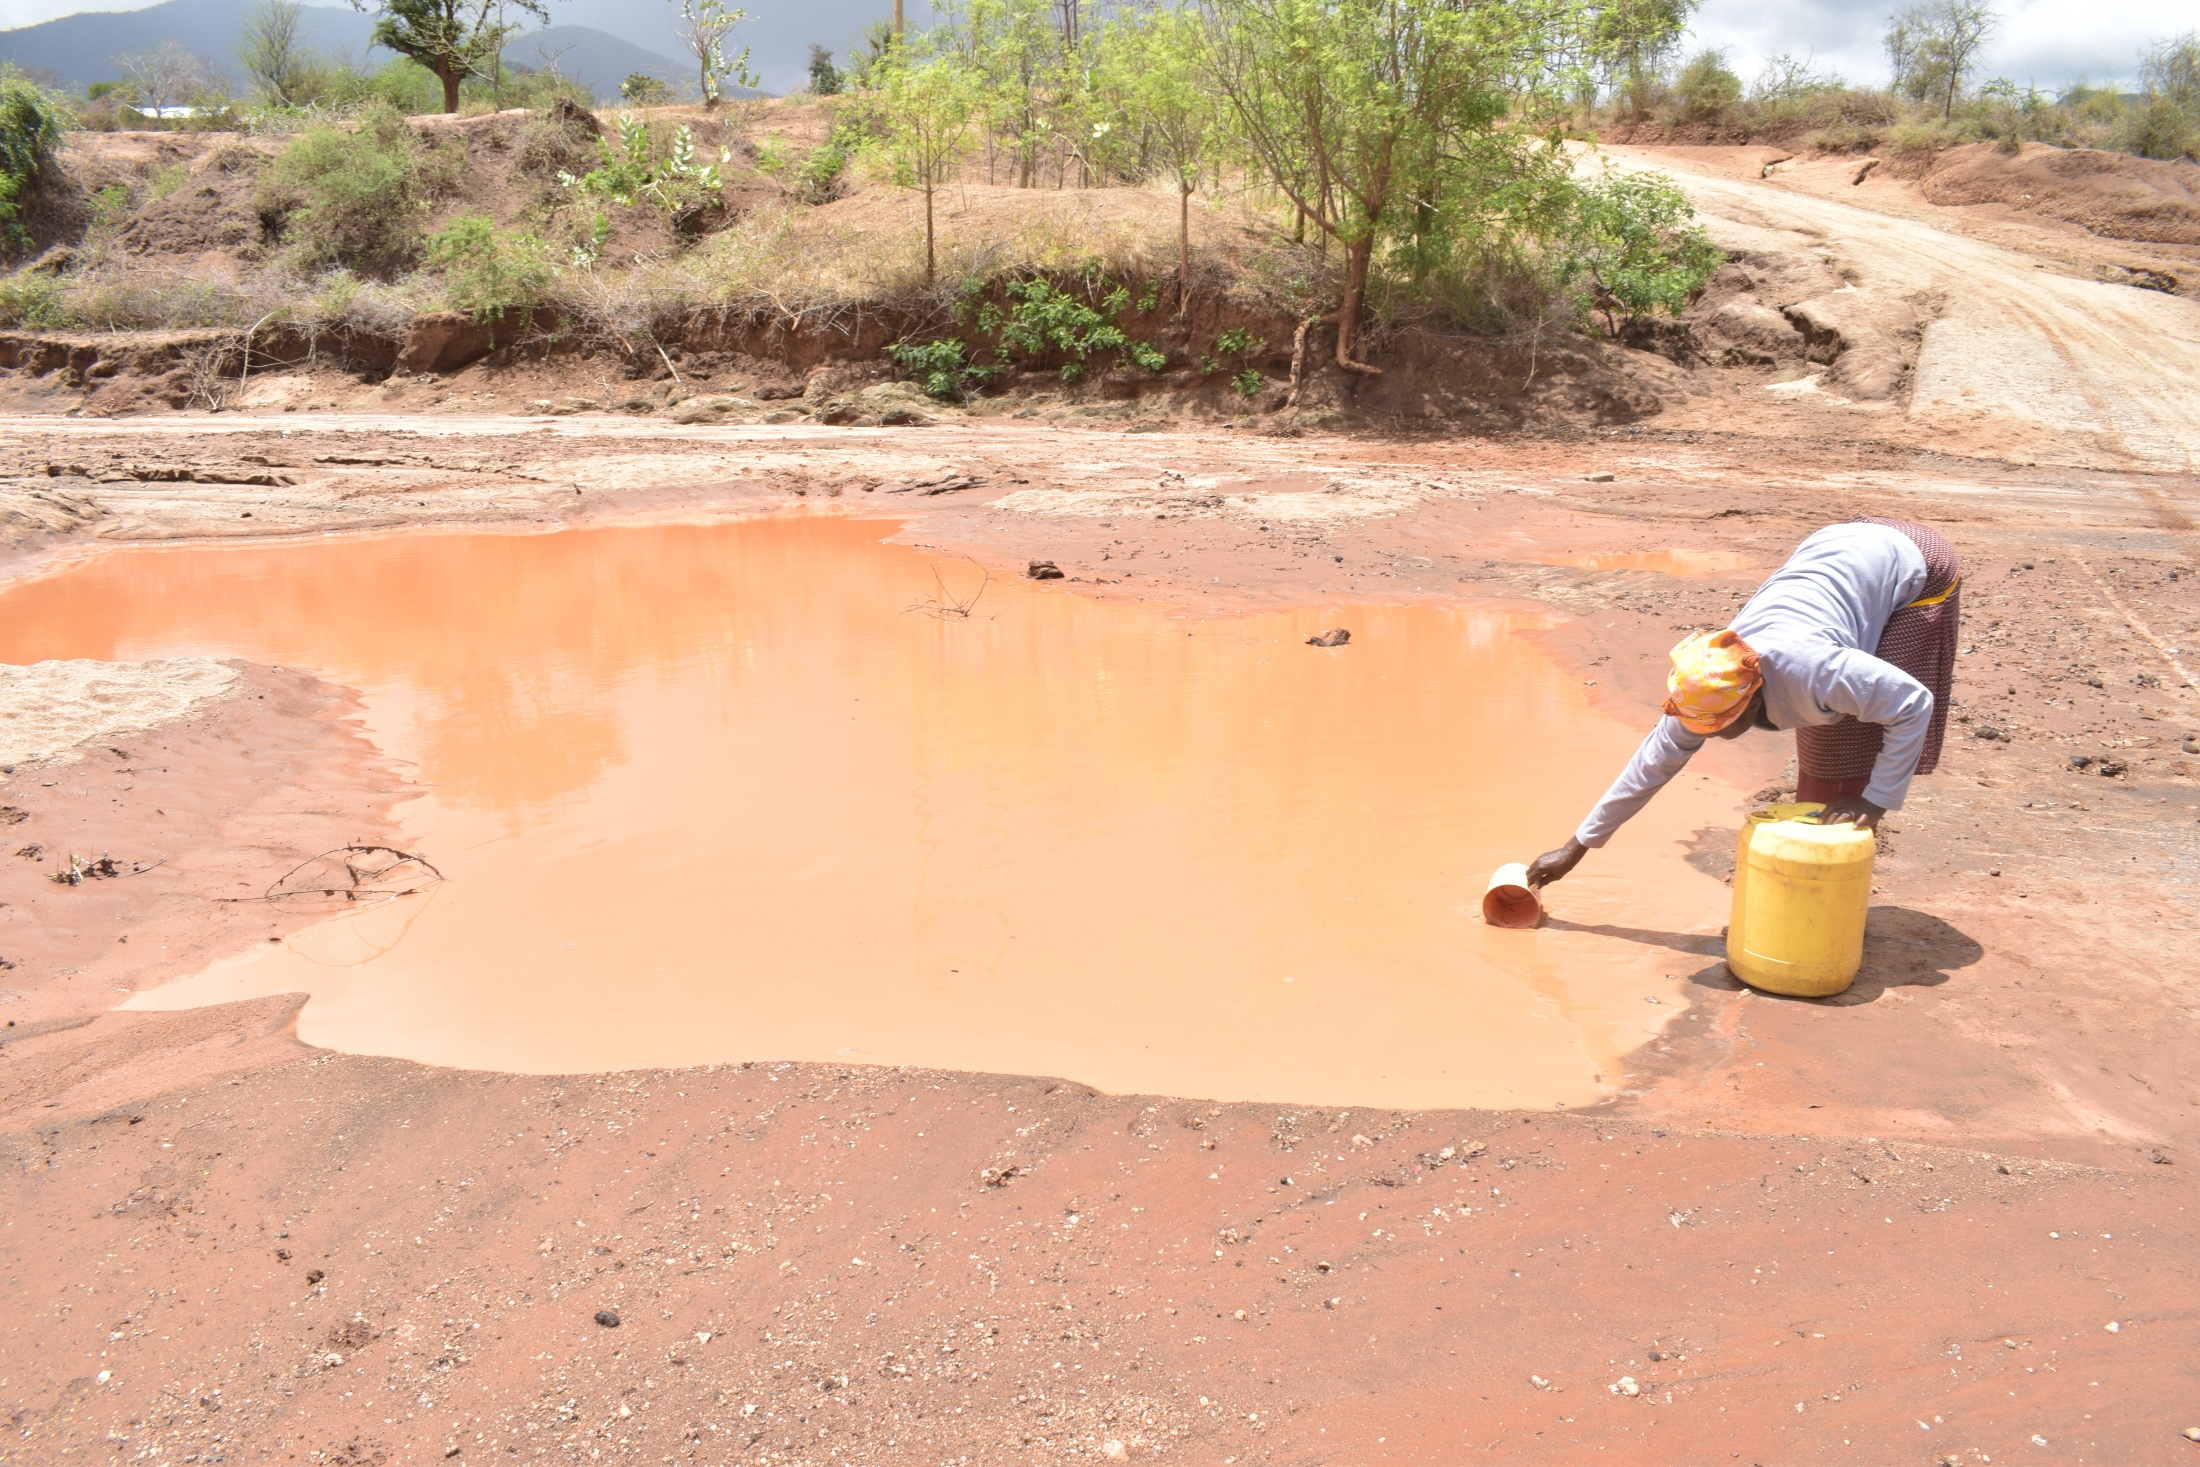 The Water Project : kenya20300-20301-scooping-water